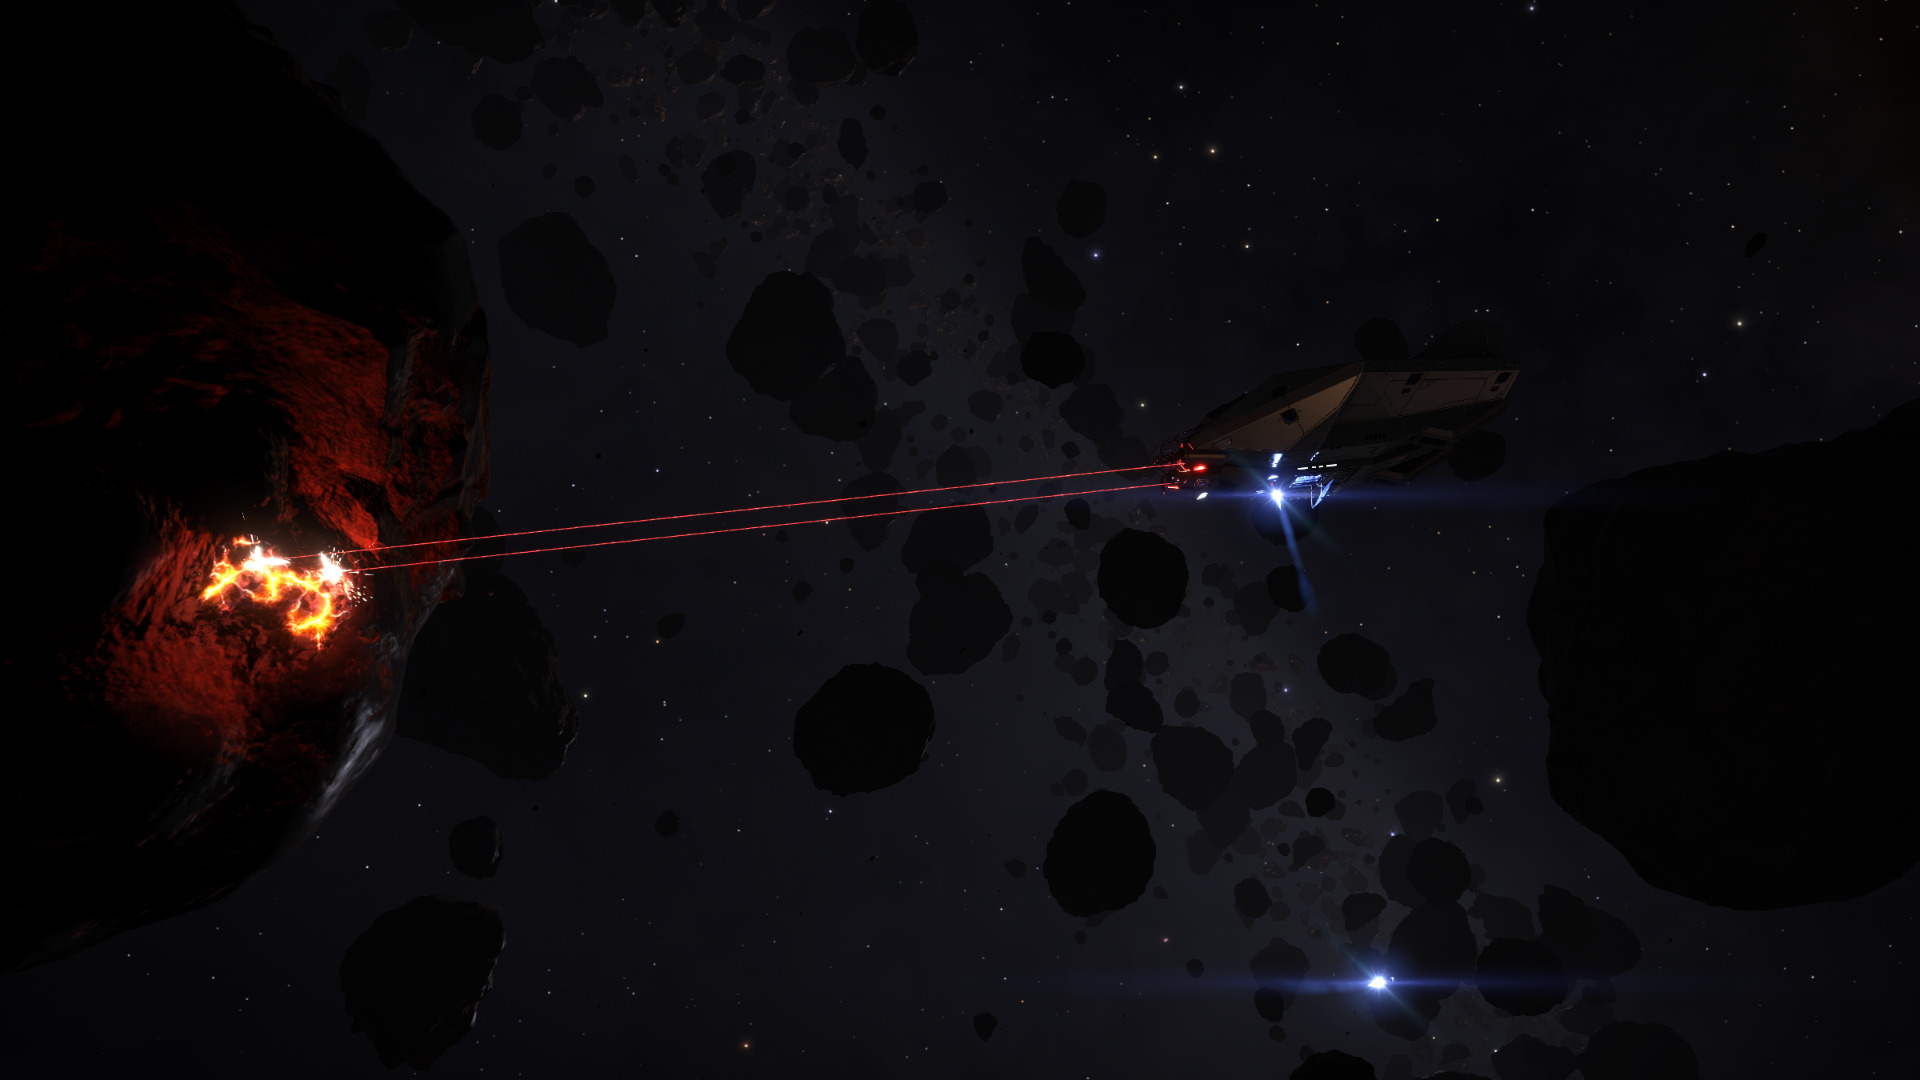 Codewiz: pictures/space/elite-dangerous/mining